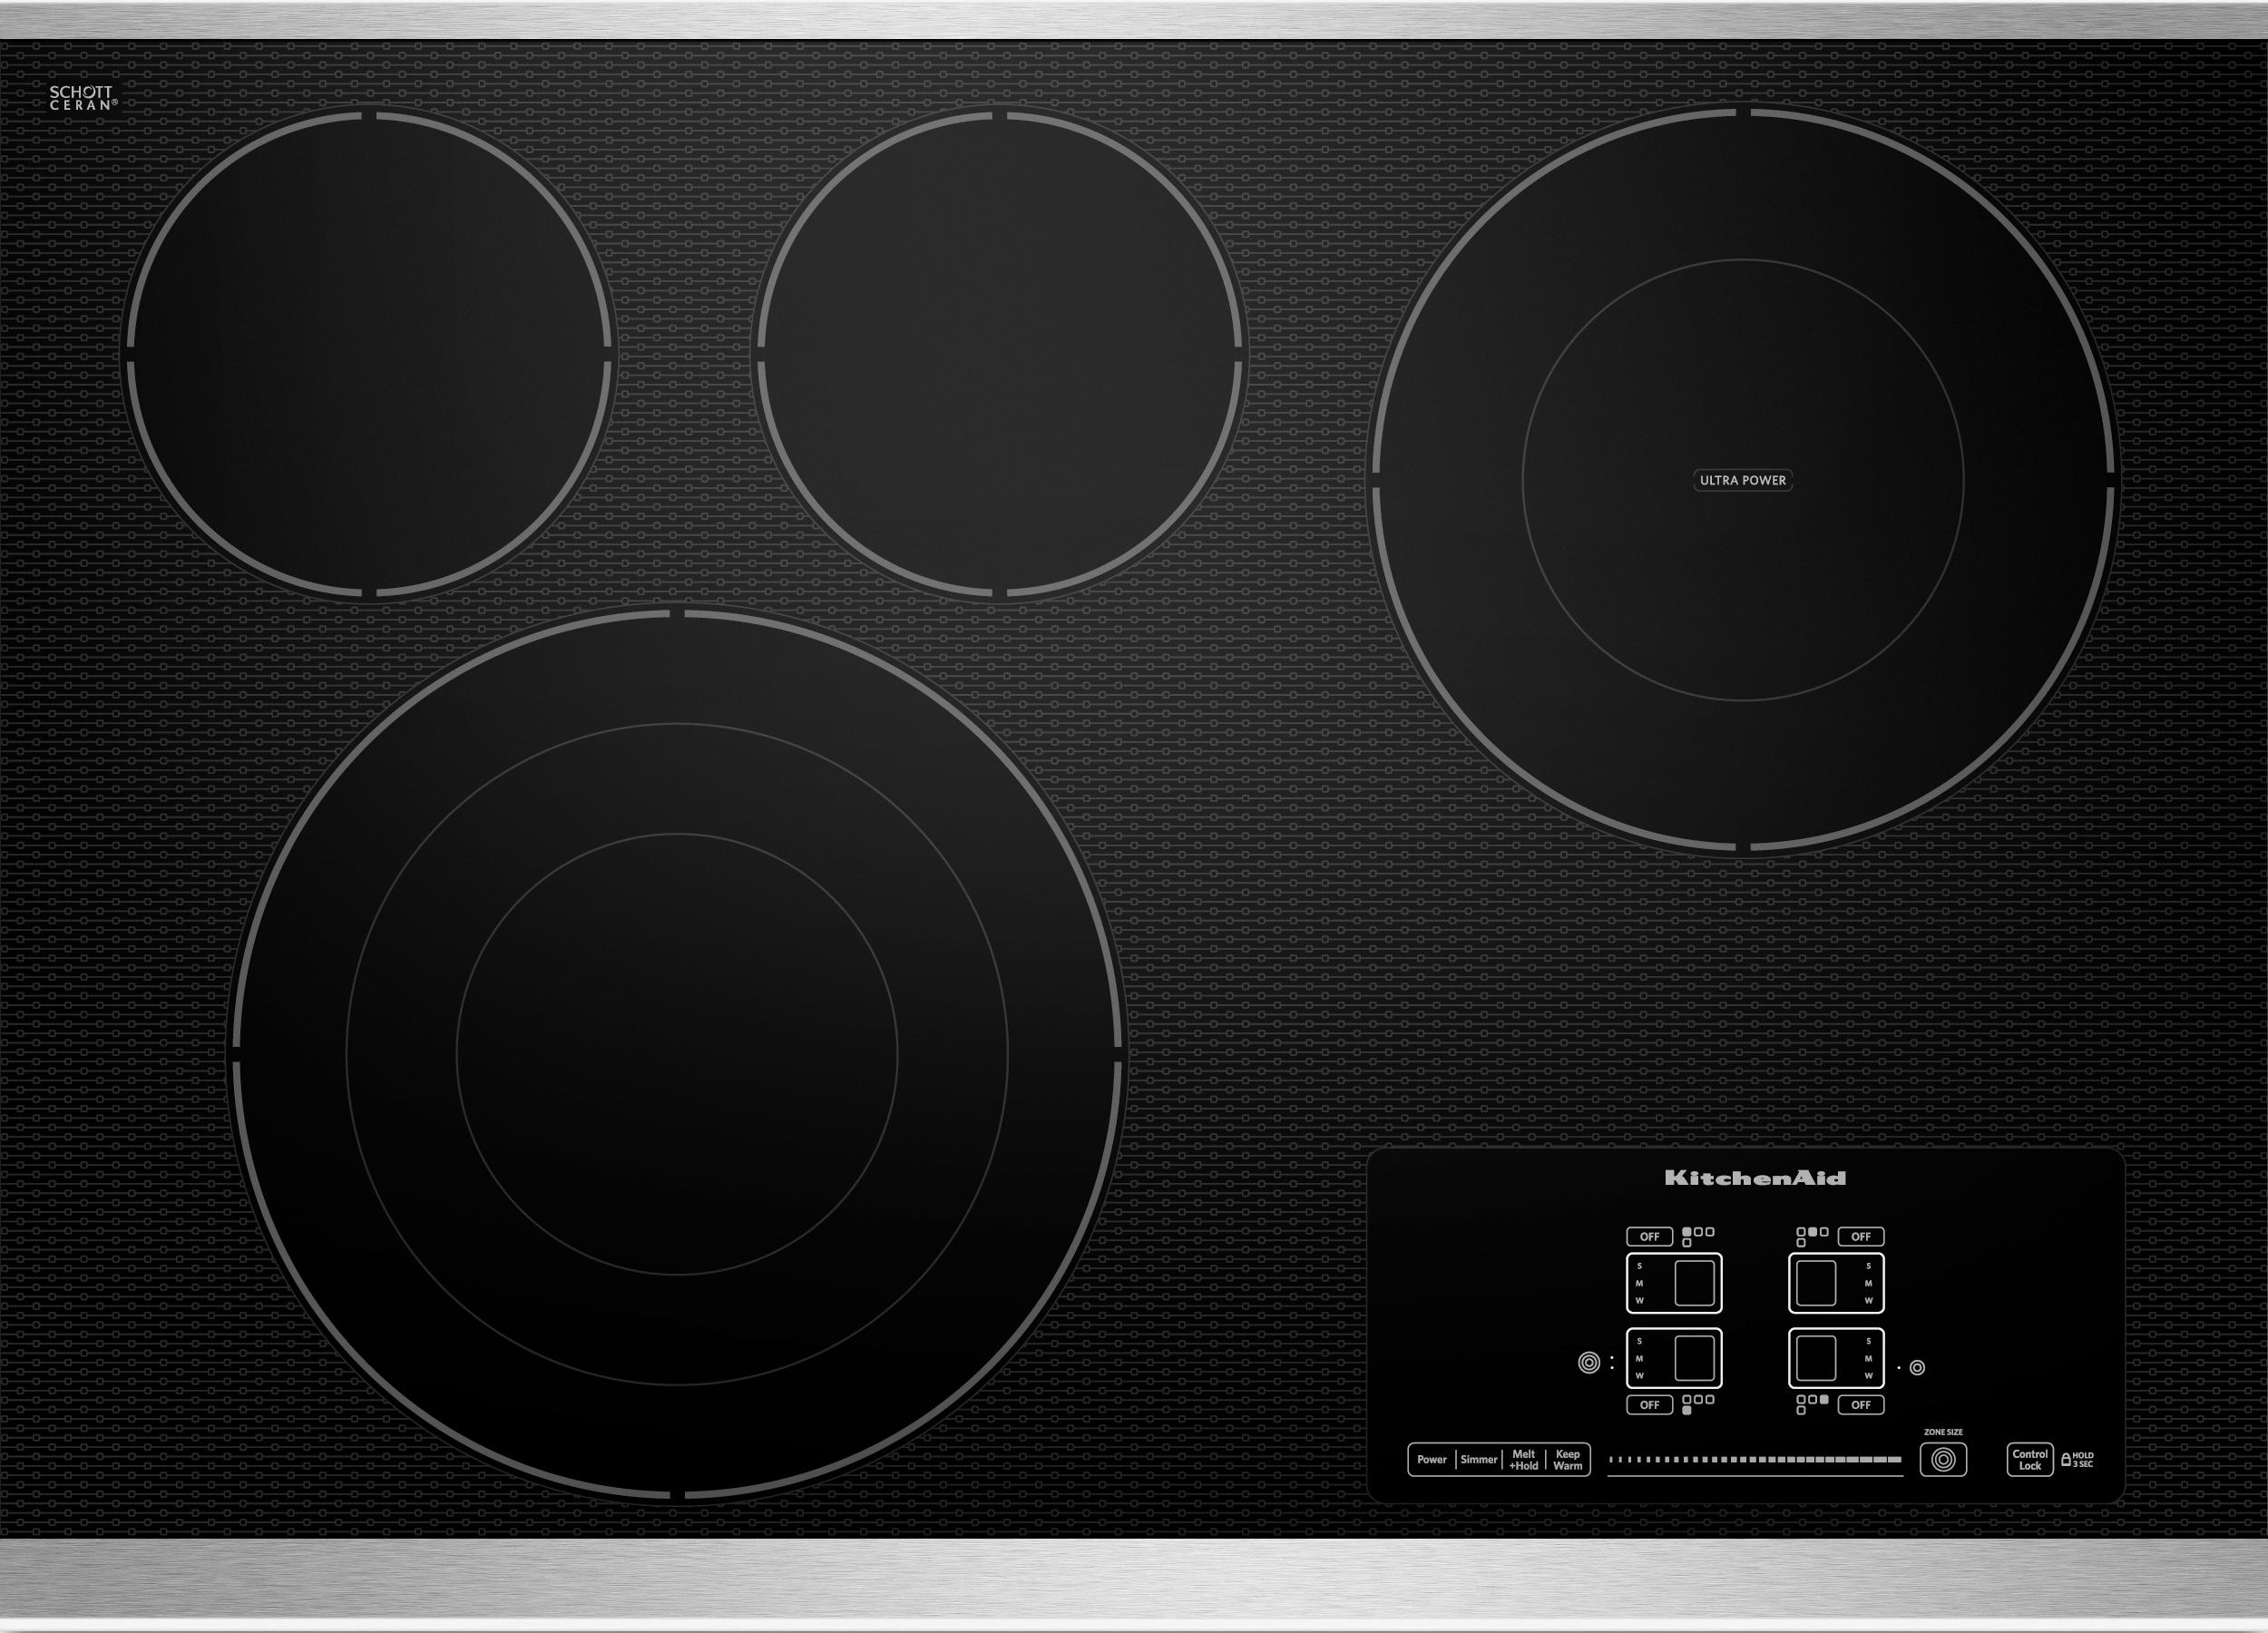 """KitchenAid Electric Cooktops - Kitchenaid 30"""" Built-In Electric Cooktop - Item Number: KECC607BSS"""